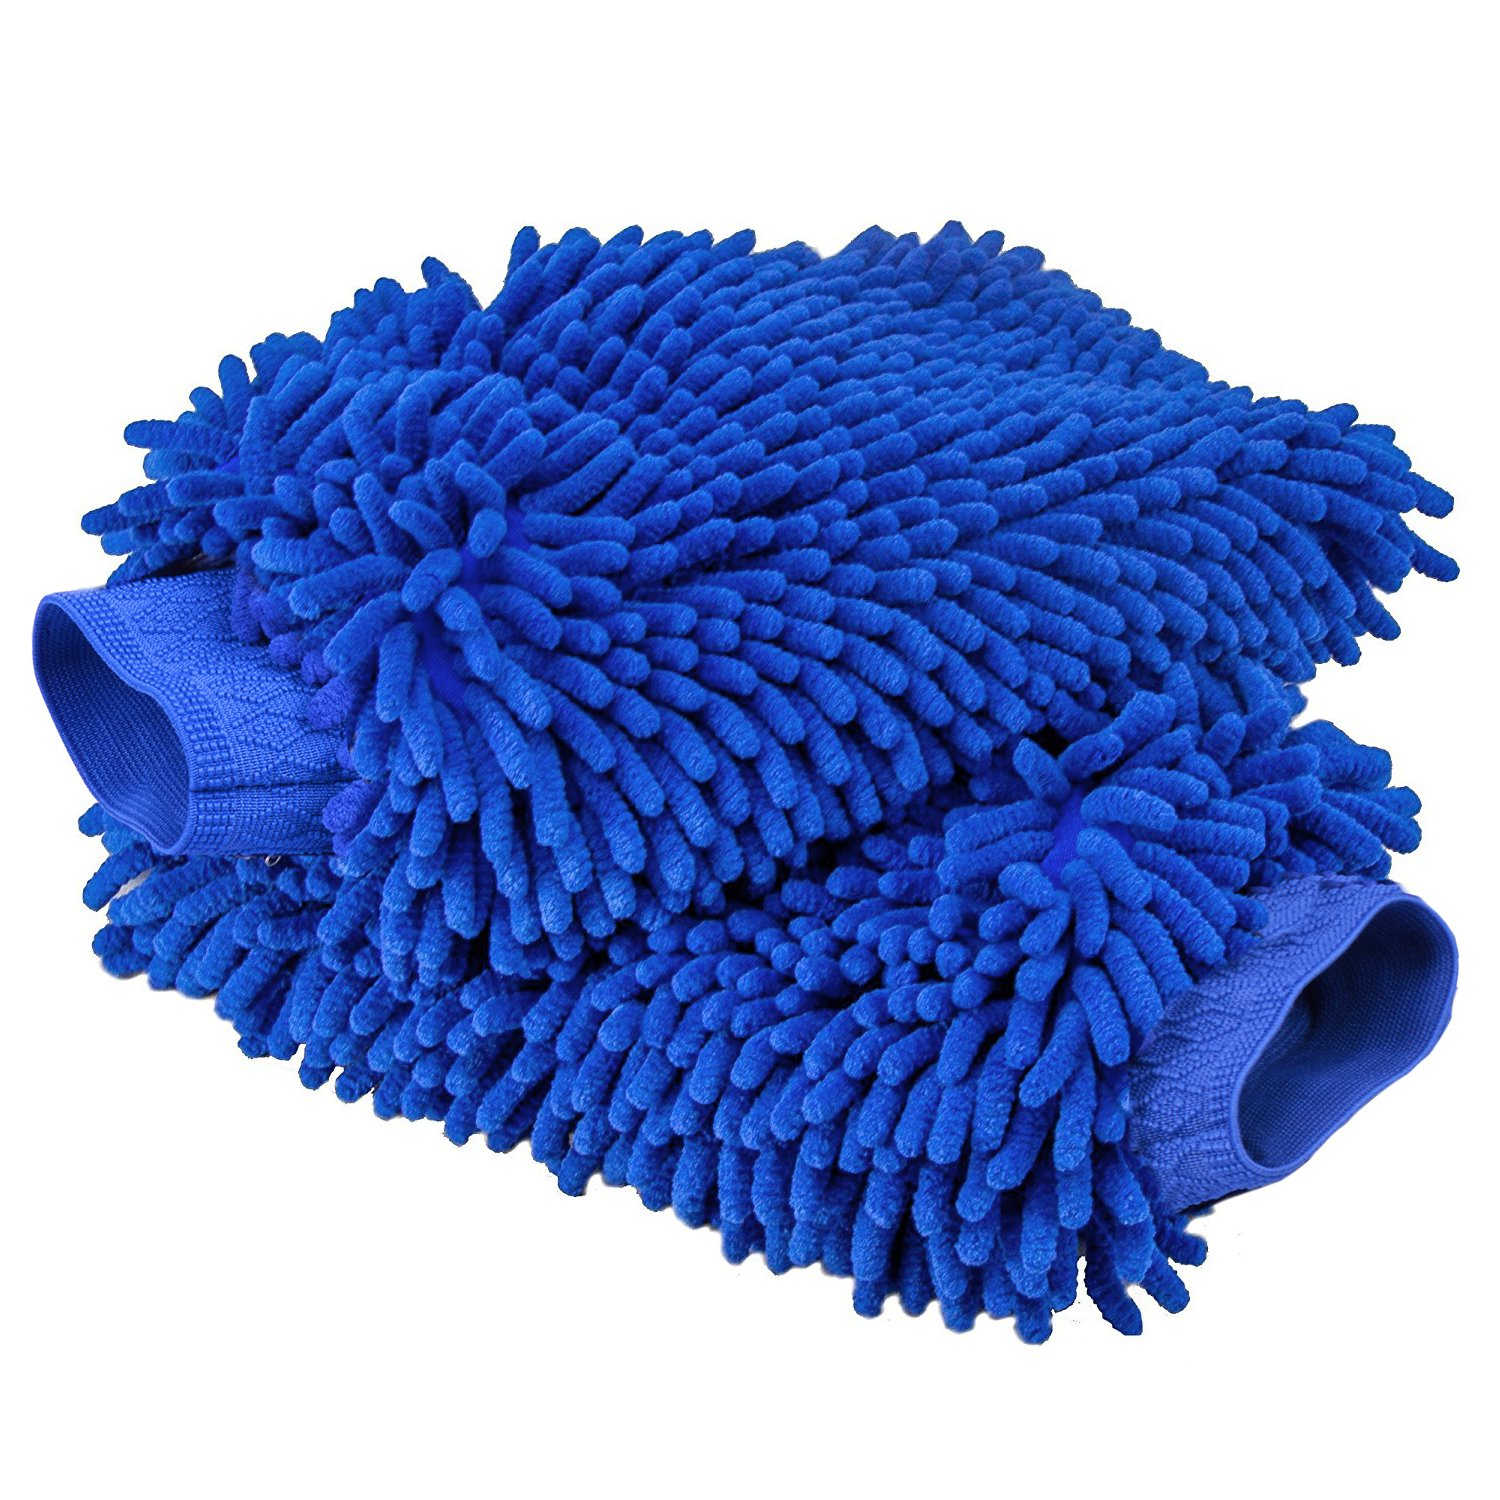 TOPLUS Ultimate Car Wash Mitt - 2 PACK Extra Large Size 10.4oz Heavy and Thick - 100% Waterproof Lining Anti-scratch Premium Chenille Microfiber Wash Sponge for Car SUV Truck Toplus-01